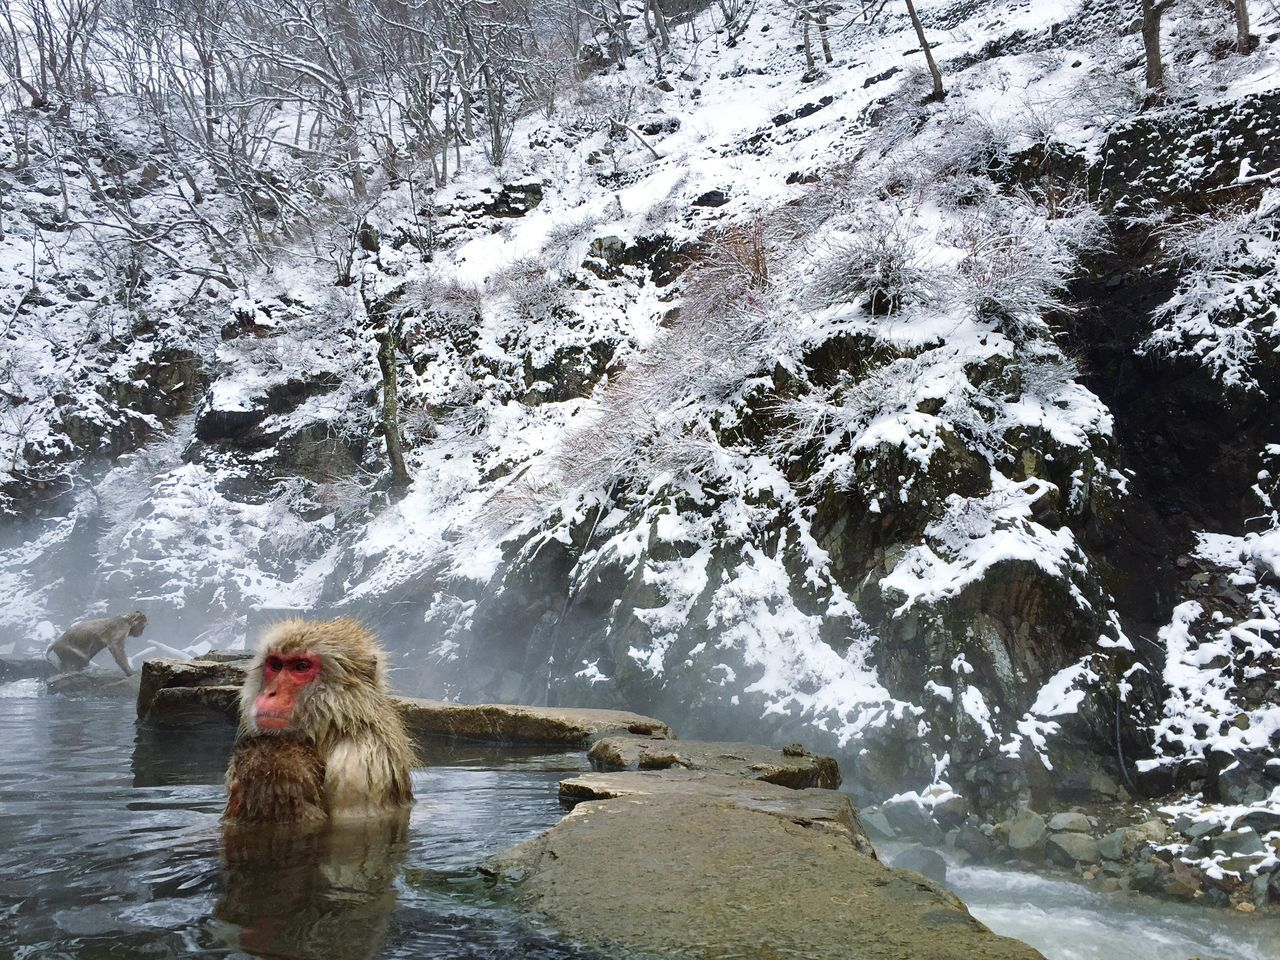 Favourite part of my trip to Japan so far? Probably visiting the monkeys bathing in the hot springs. Monkey Hot Springs Japan Open Edit RePicture Travel The Traveler - 2015 EyeEm Awards Share Your Adventure The Great Outdoors - 2015 EyeEm Awards